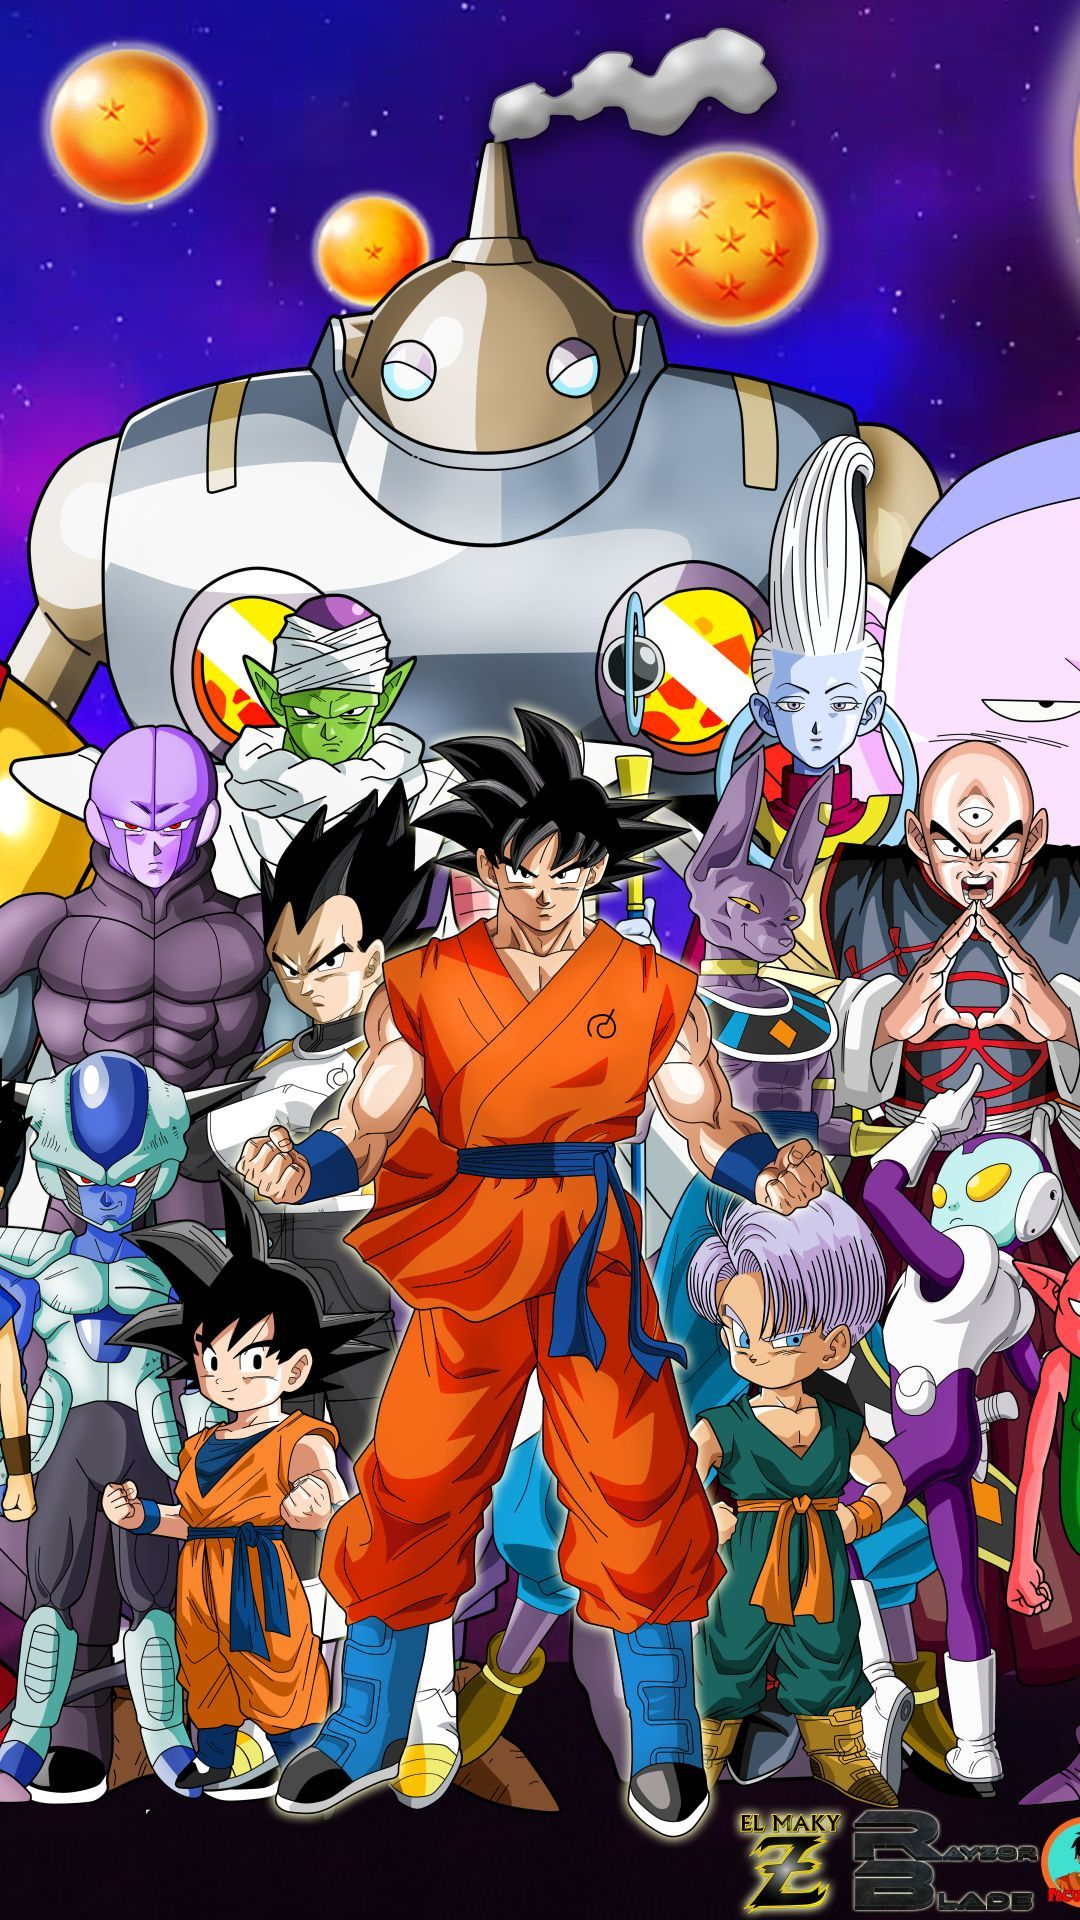 Dragon Ball Z Wallpaper Hd Hupages Download Iphone Wallpapers 1080x1920